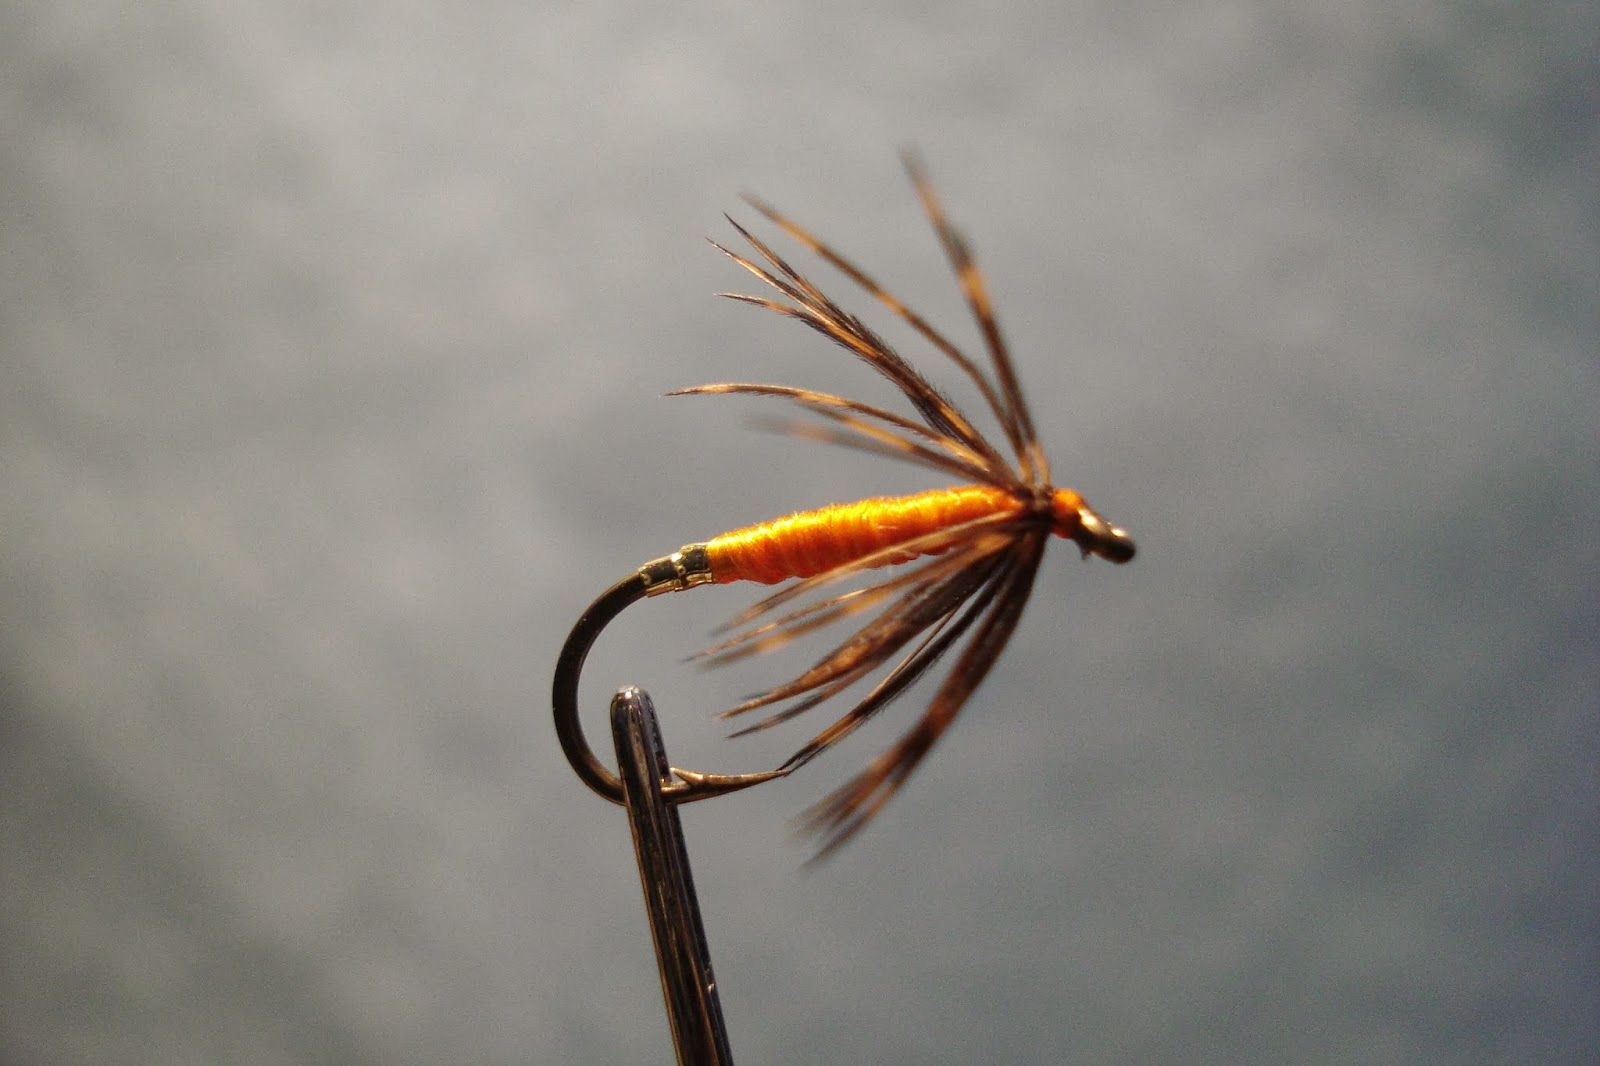 SOFT HACKLES, TIGHT LINES